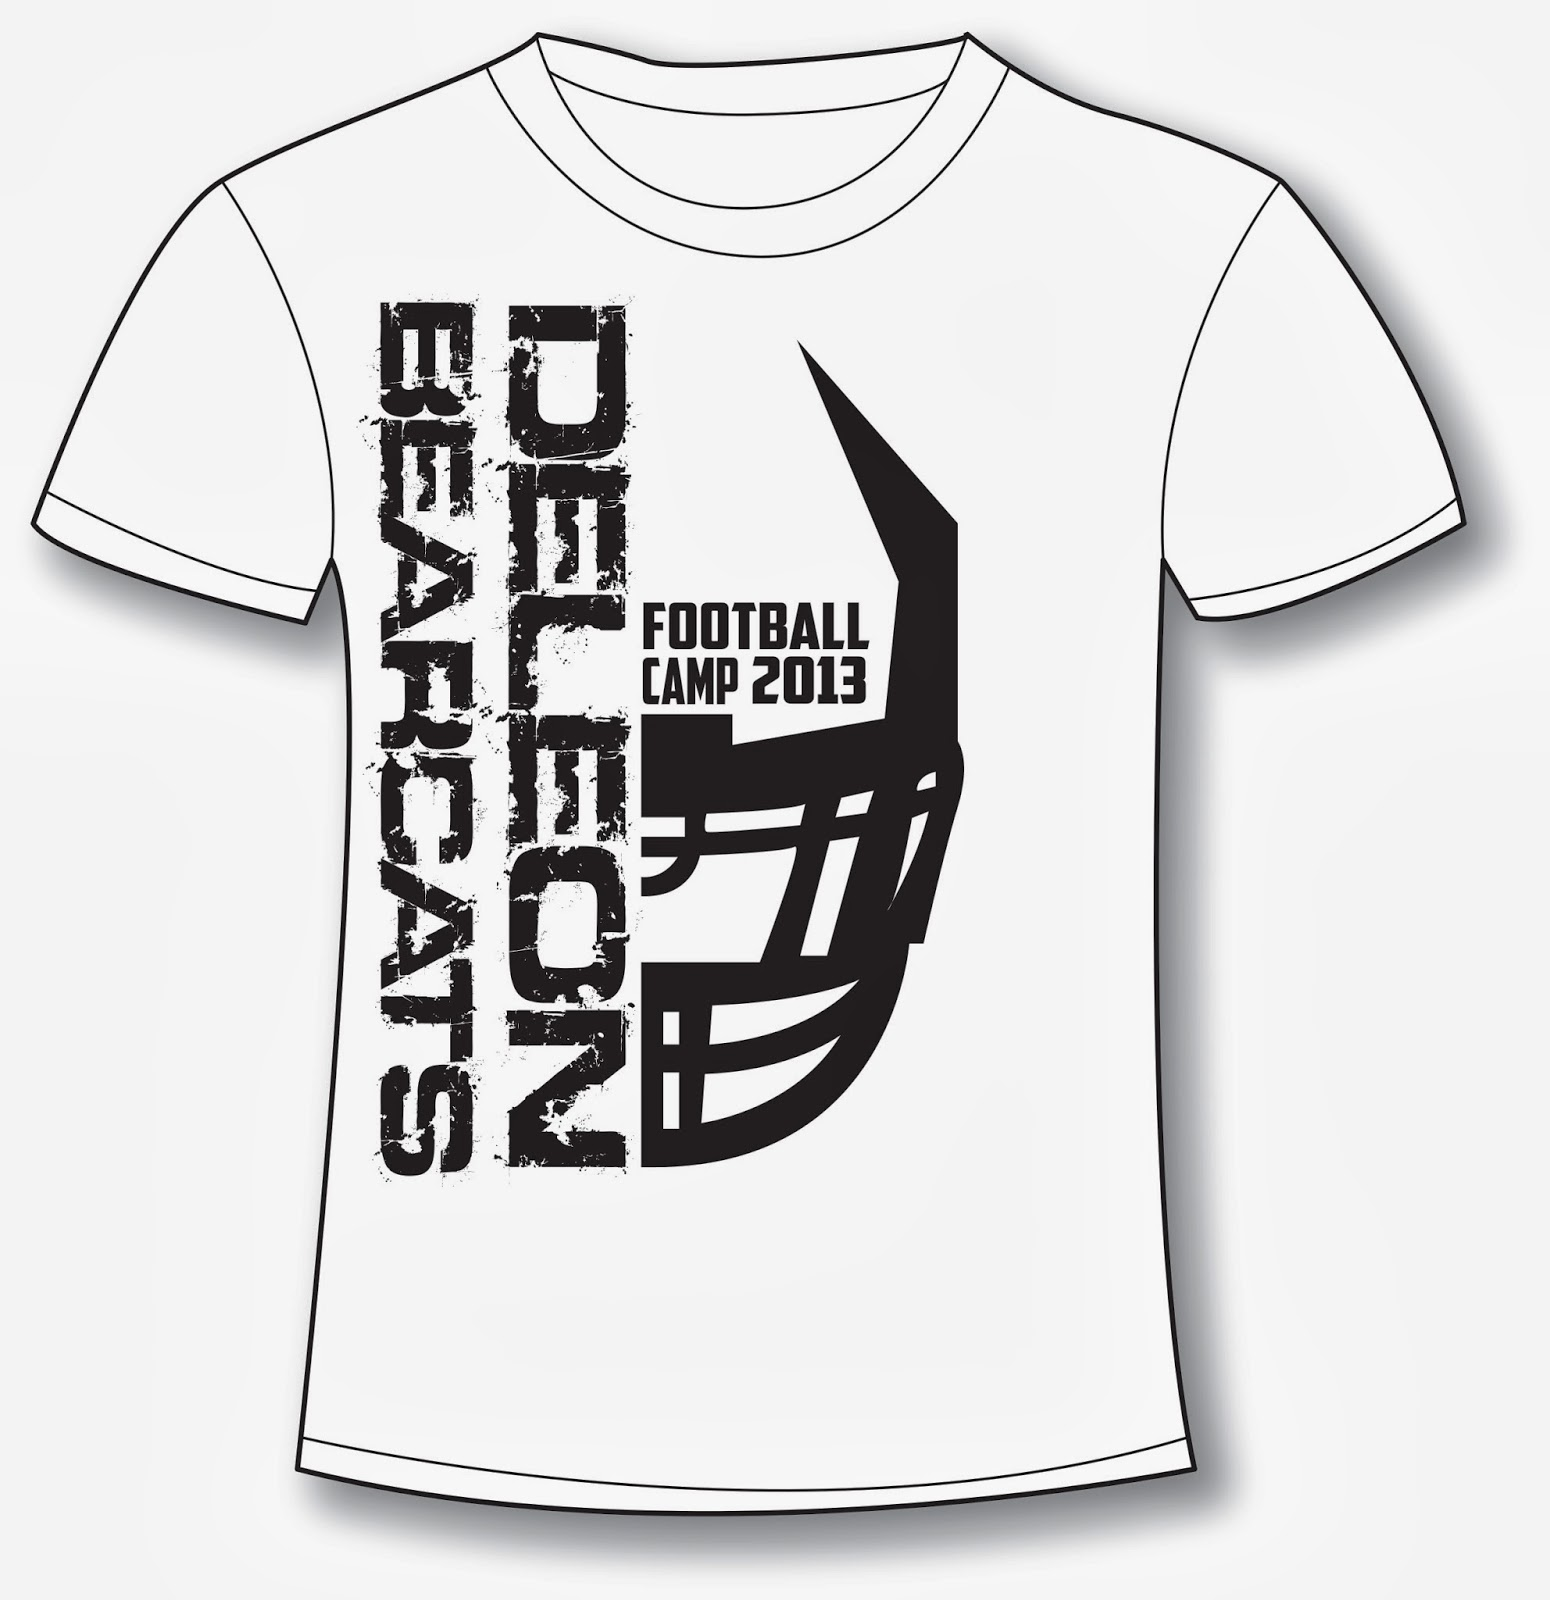 5e3468e4f Free Design Images Football T Shirt Football T Shirts · Fairview Clothing  Available Fairview Independent Schools